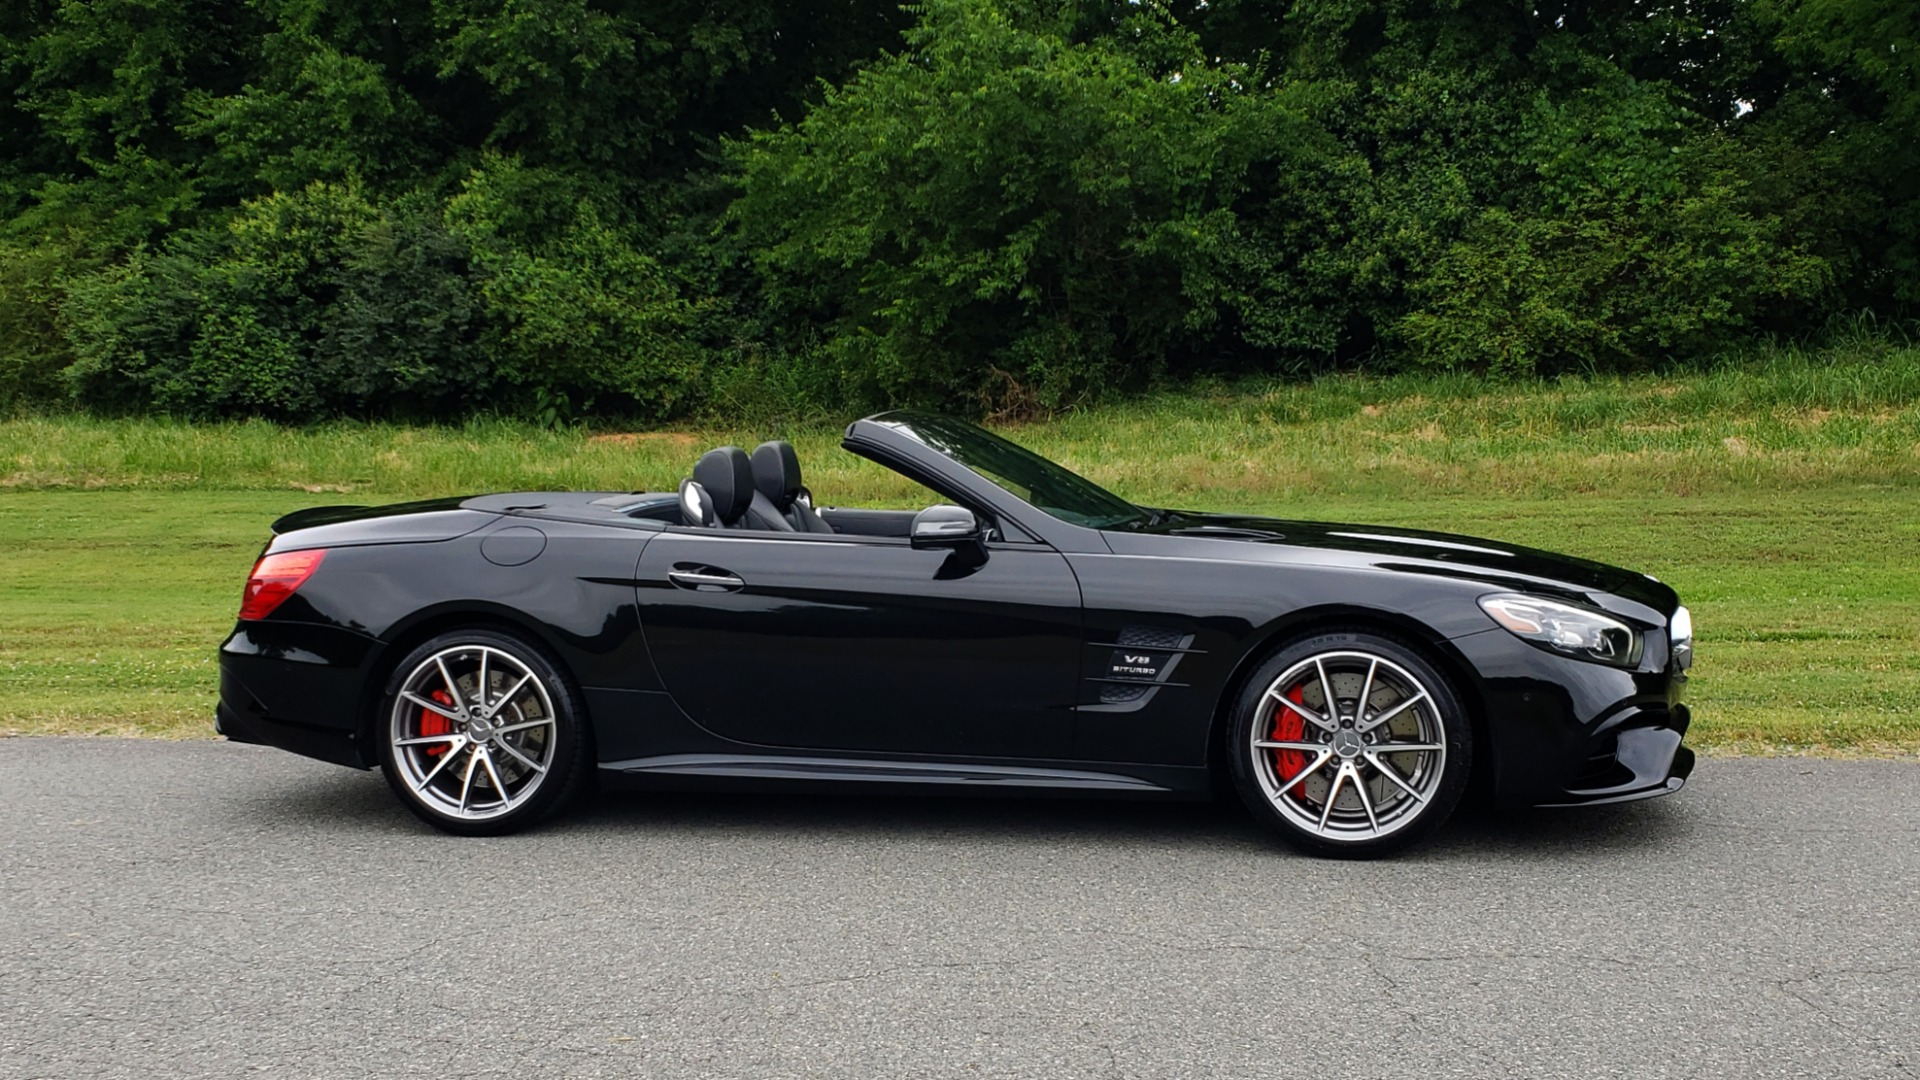 Used 2017 Mercedes-Benz SL 63 AMG / ROADSTER / DRIVER ASSIST / NAV / CAMERA for sale Sold at Formula Imports in Charlotte NC 28227 25